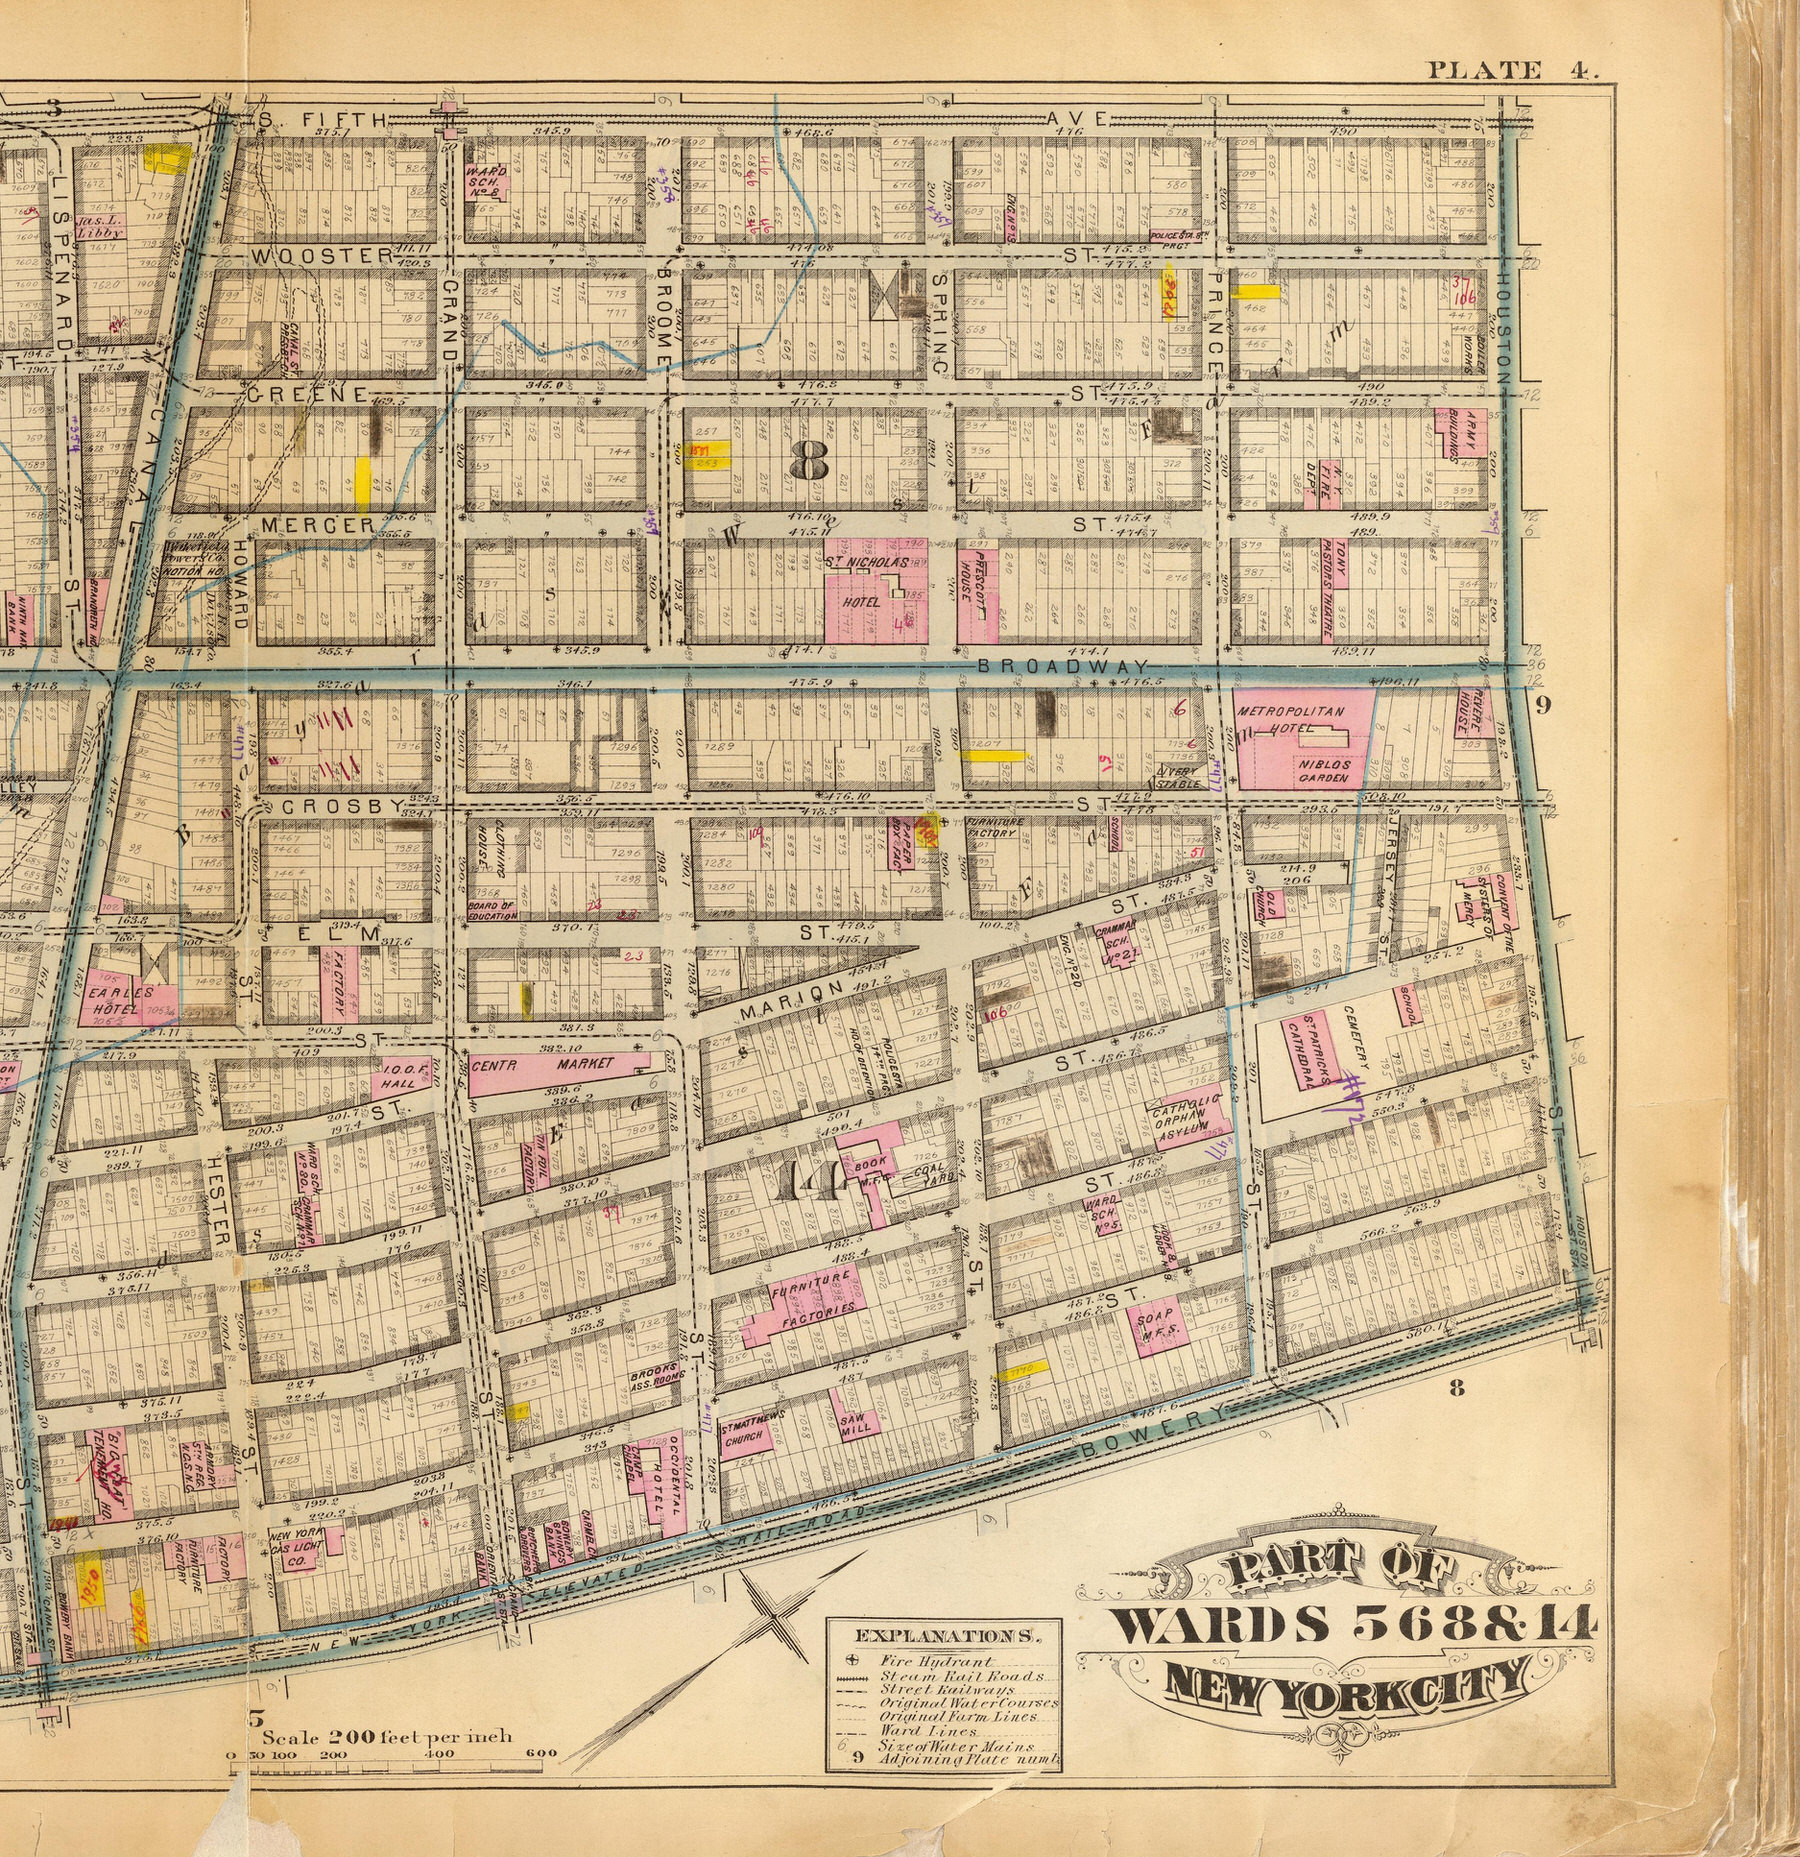 Map of Brothels: The brothels of Greene Street, and the nearby theatres and hotels. Every red point is a brothel on the block either in 1870, 1880, or both. Part of wards 5, 6, 8 & 14, New York City. (G.W. Bromley & Co., civil engineers. Published by Geo. W. Bromley & E. Robinson, 1879). Data from Gilfoyle, Timothy. City of Eros: New York City, Prostitution, and the Commercialization of Sex, 1790- 1920 WW Norton & Company: New York, 1994.